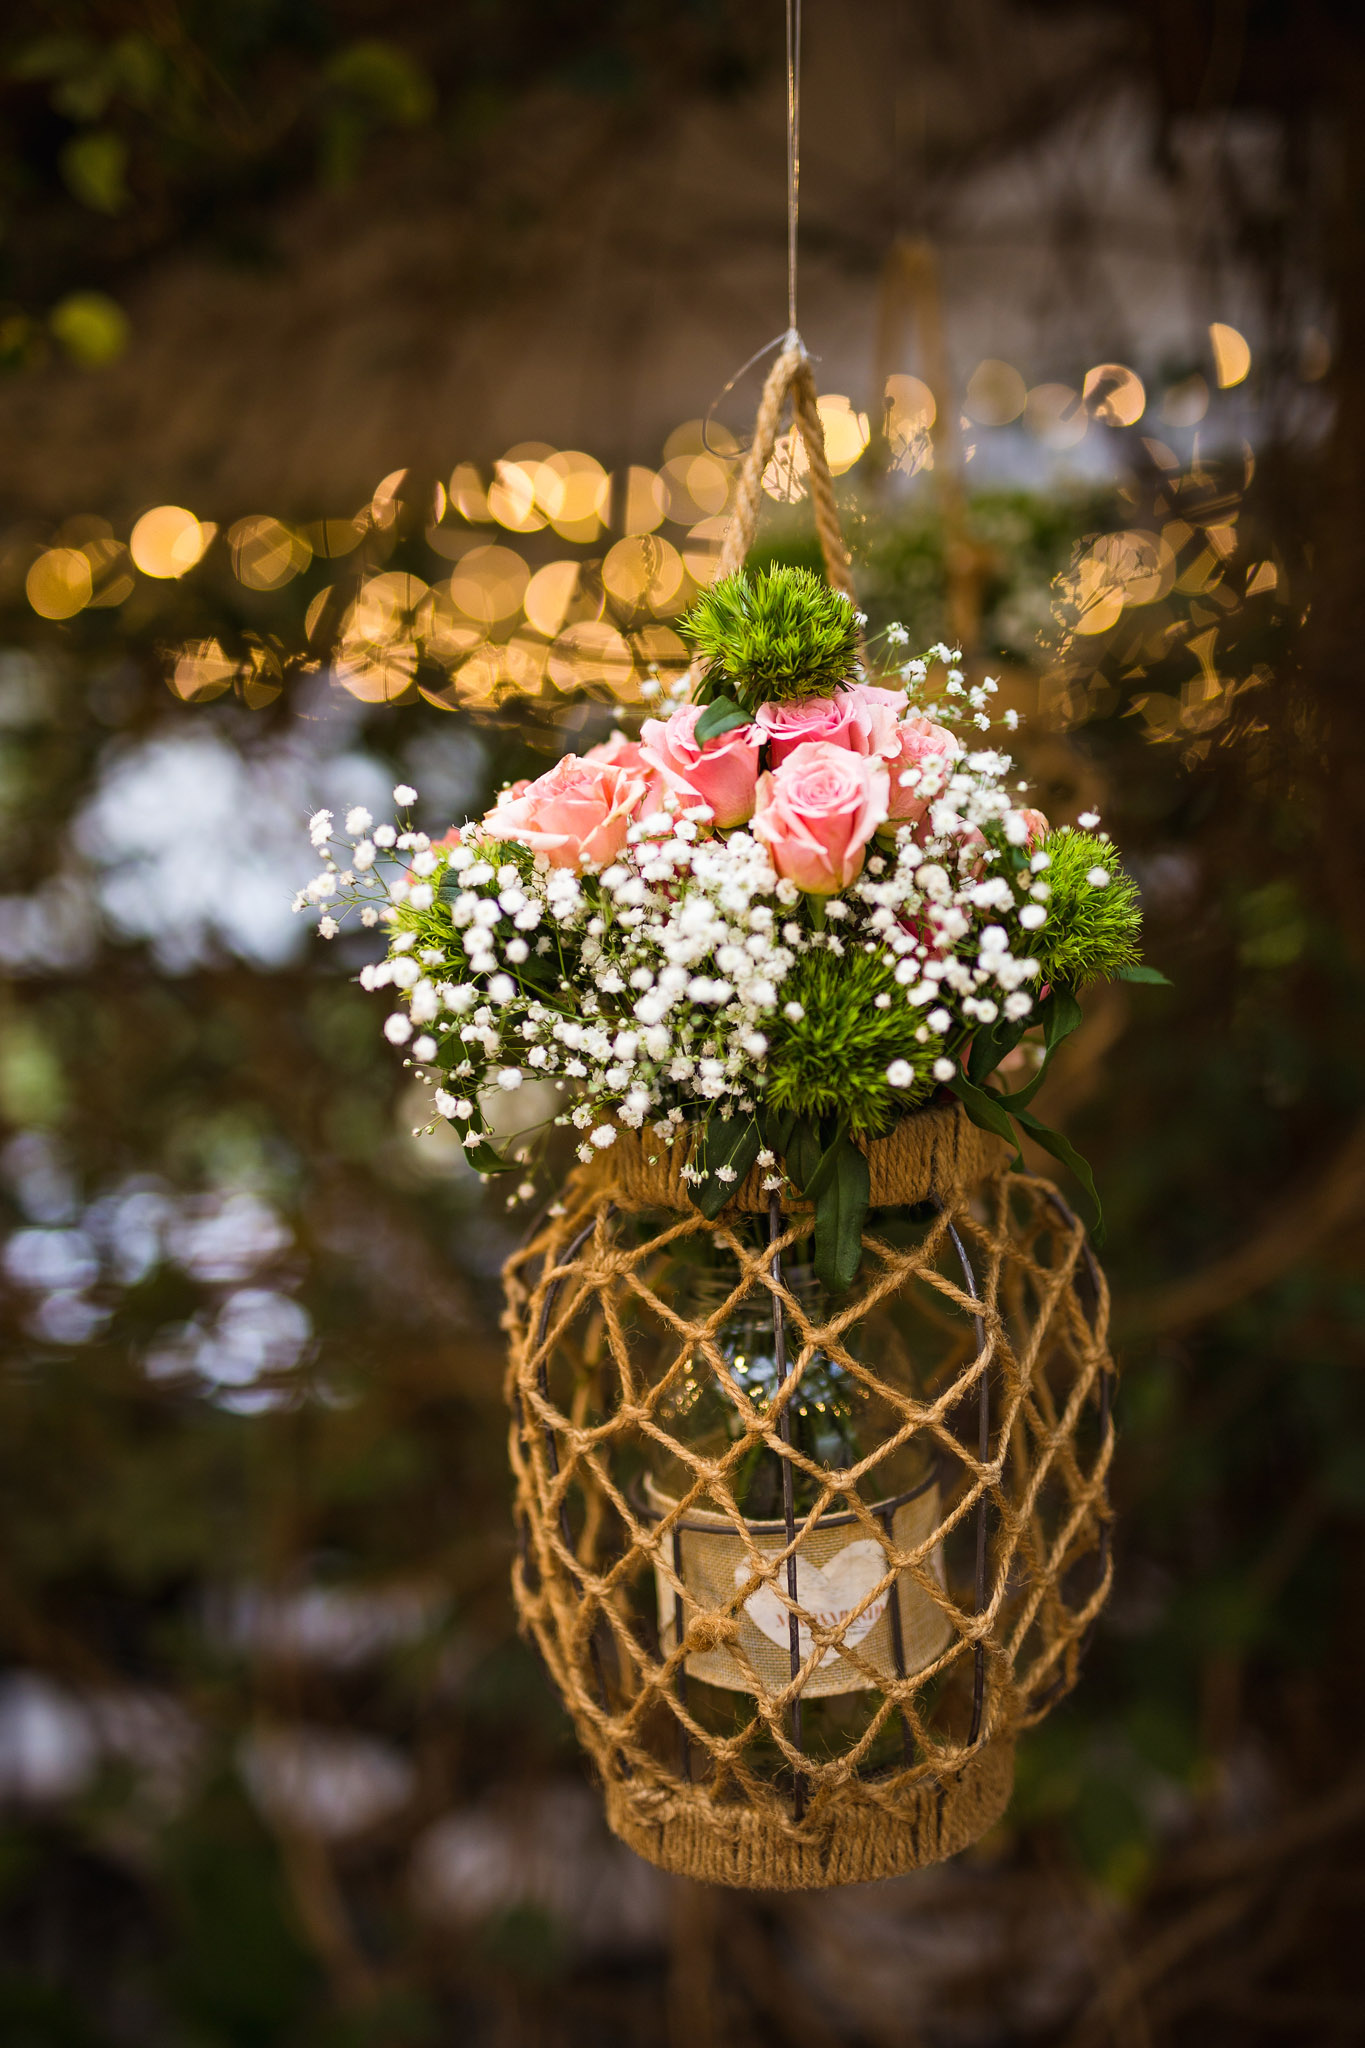 wedding-travellers-destination-wedding-photography-colombia-medellin-chuscalito-decoration-white-pink-rose